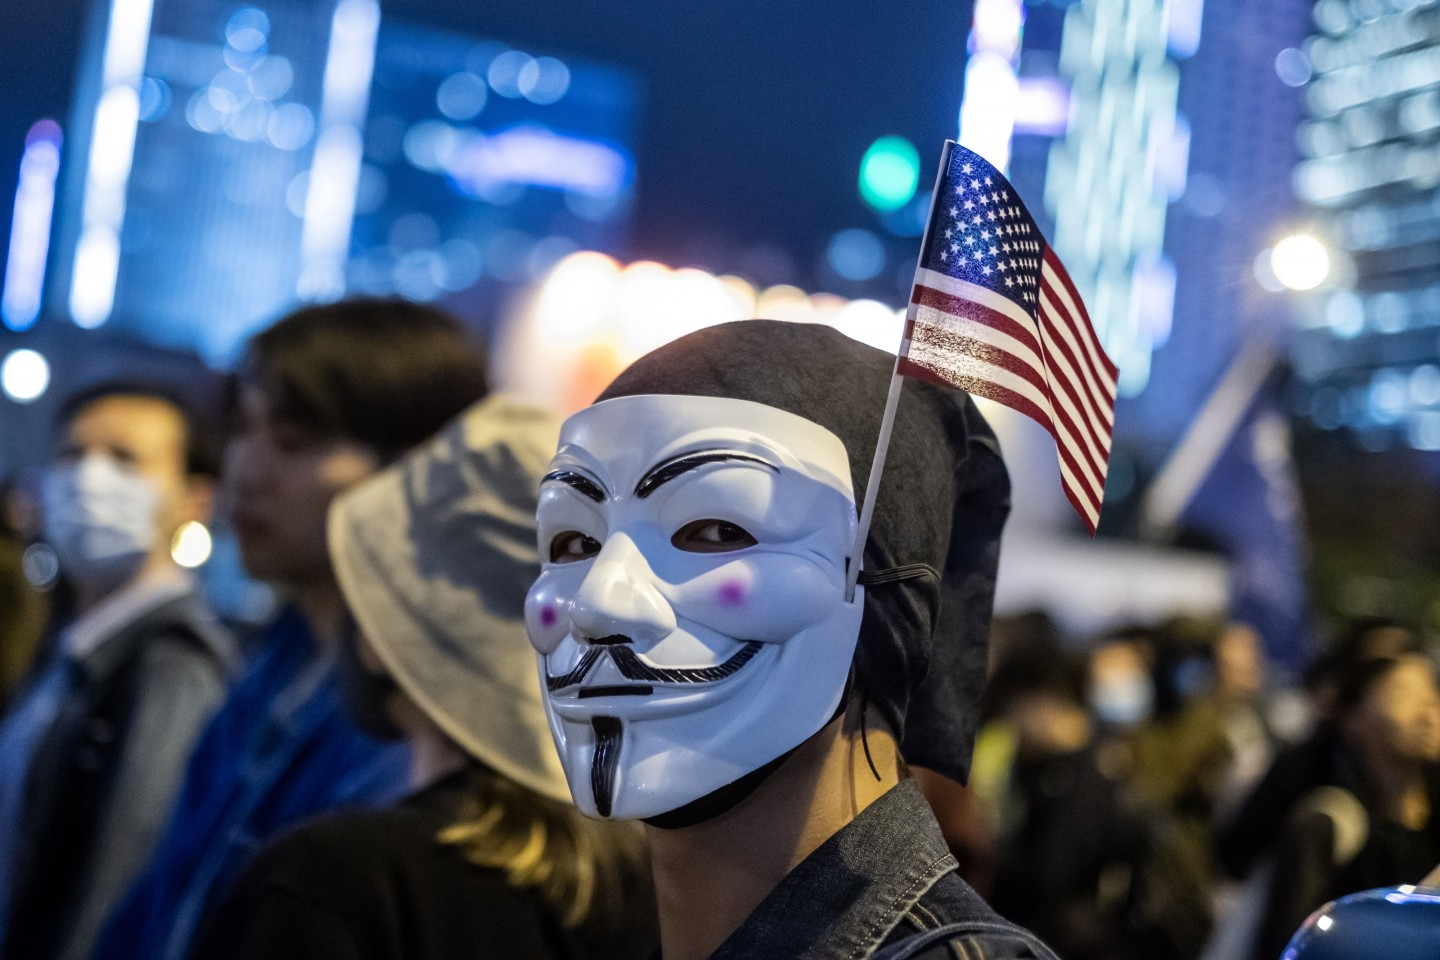 """A demonstrator wears an anonymous mask, also known as a Guy Fawkes mask, and an American flag during the """"Thanksgiving Day Assembly for Hong Kong Human Rights and Democracy Act"""" at Edinburgh Place in the Central district of Hong Kong, China, on Thursday, Nov. 28, 2019. (Justin Chin/Bloomberg)"""